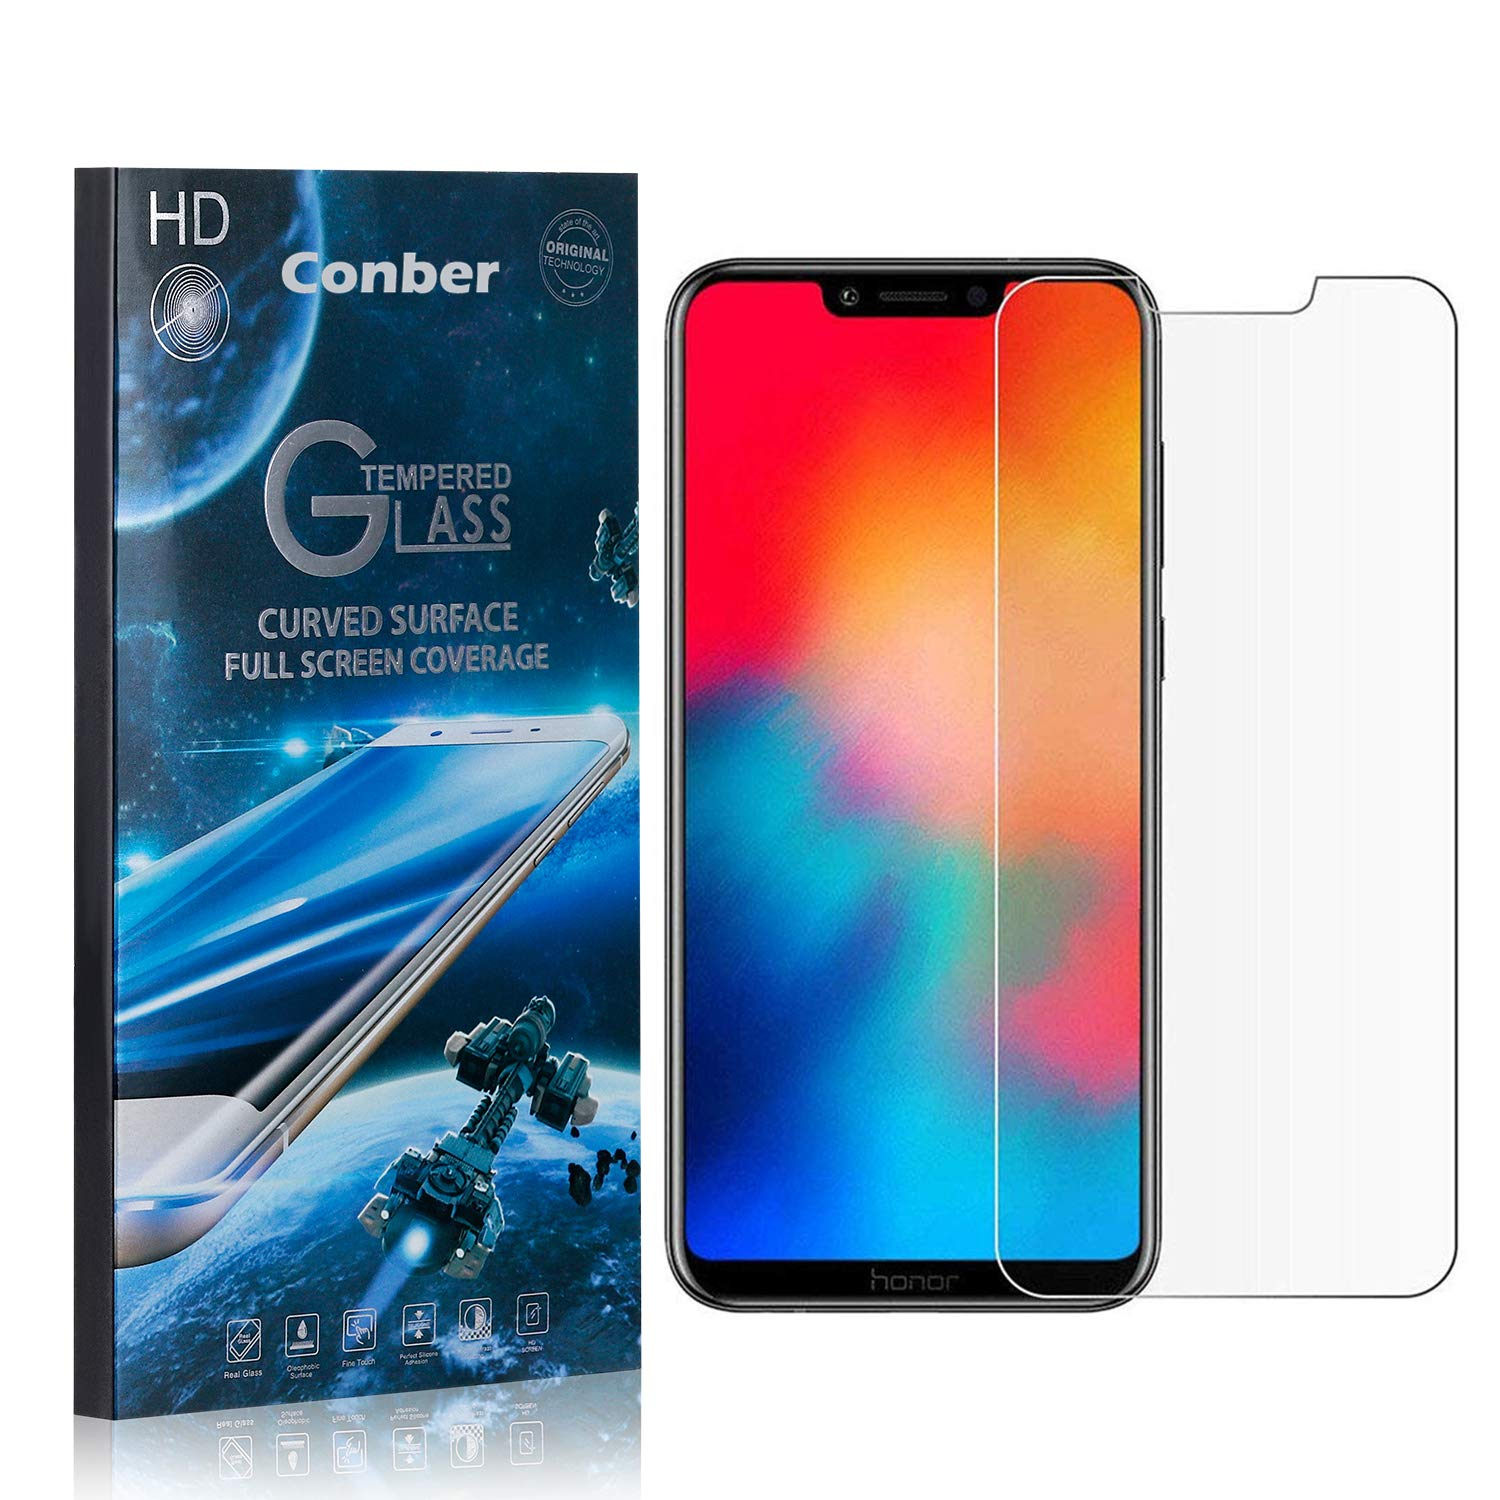 Conber 3 Pack Max 57% OFF Screen Protector for Play Scratch Honor Huawei Sale item